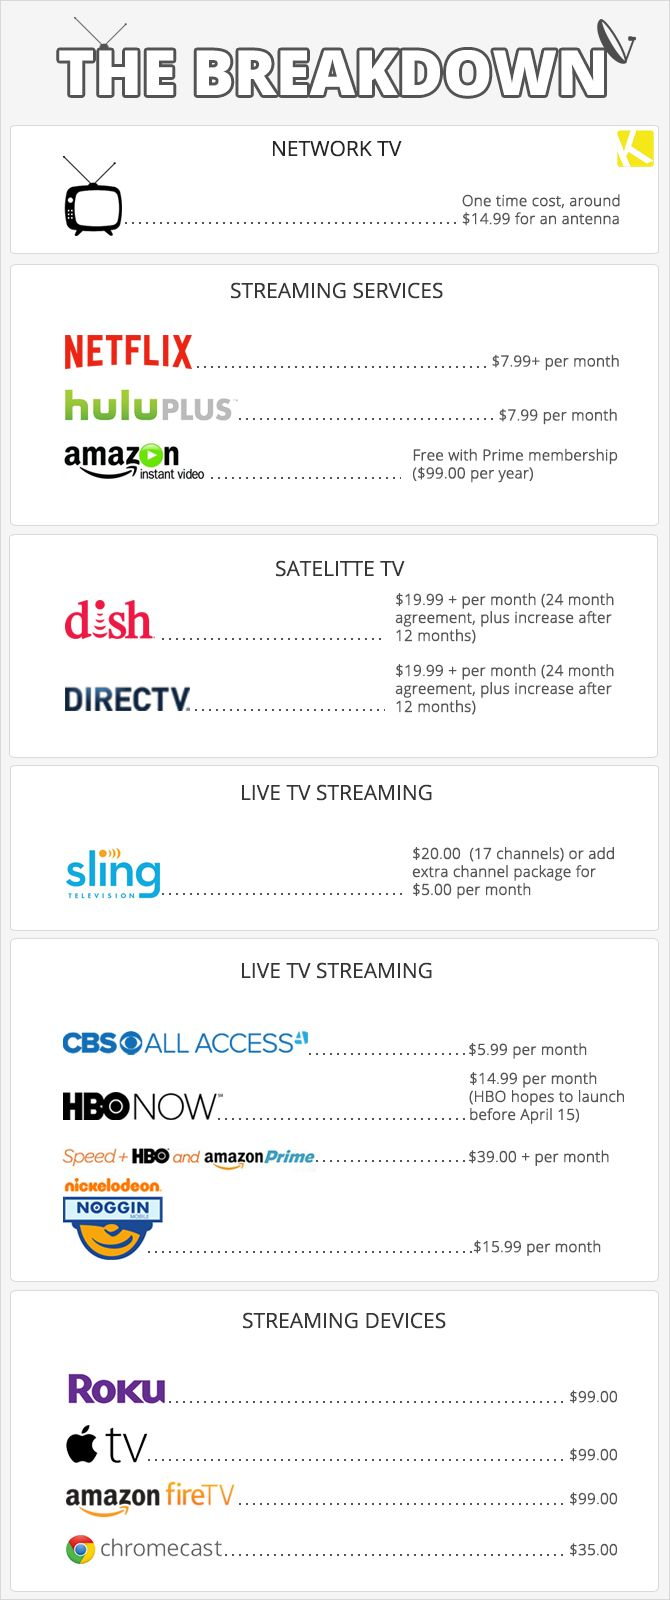 Just when I thought I finally had my television services all set up, my options changed again. This time, Dish's Sling TV is the newcomer....